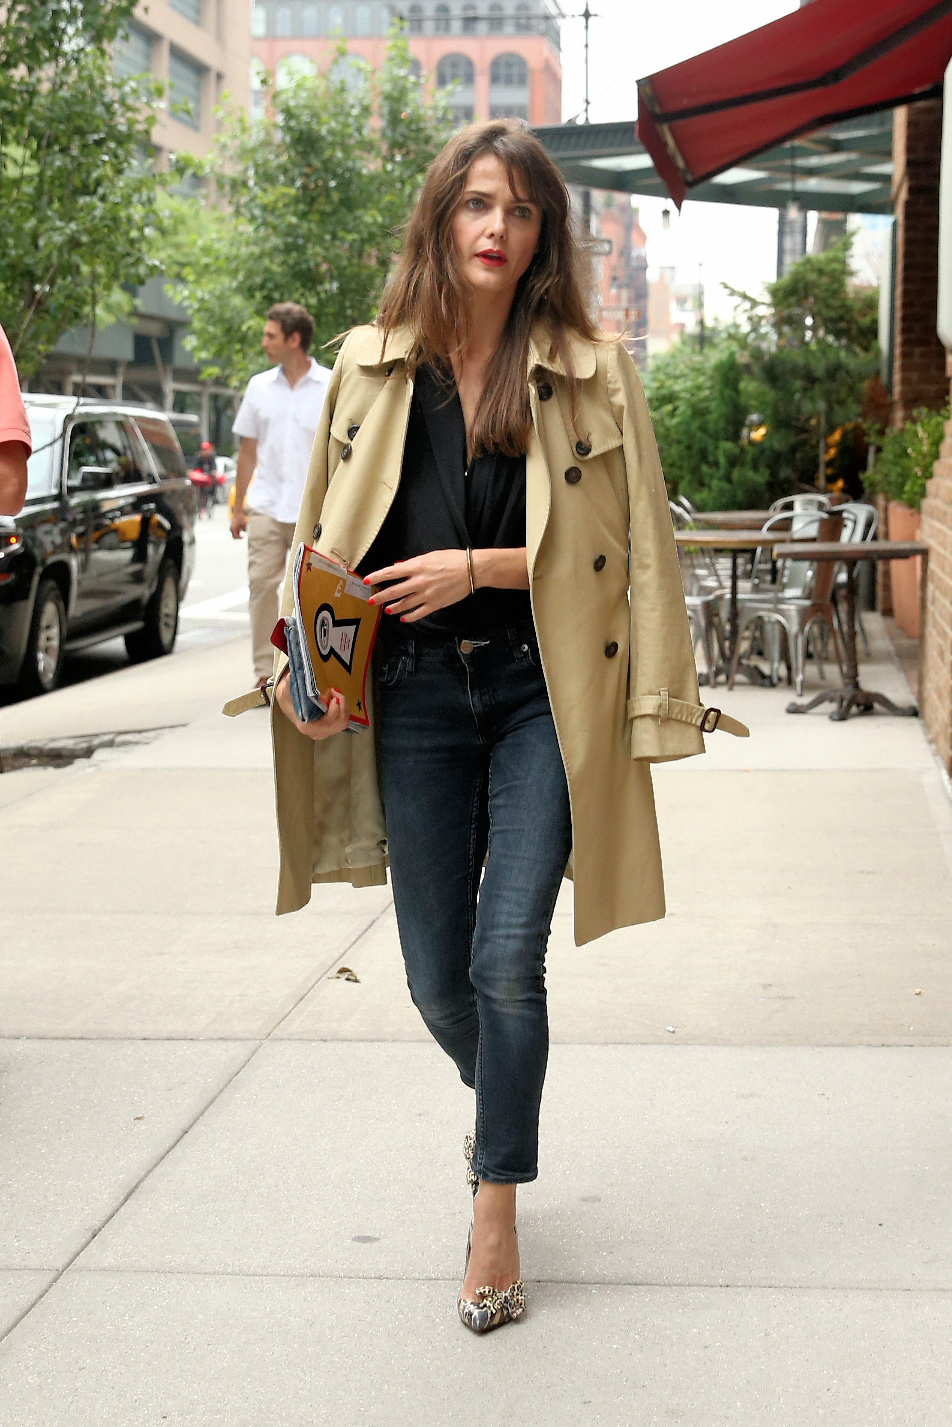 Actress Keri Russell, wearing a trench coat over her shoulders, arrives at the Greenwich Hotel in New York City, NY.  Pictured: Keri Russell Ref: SPL1513553 050617 NON-EXCLUSIVE Picture by: SplashNews.com  Splash News and Pictures Los Angeles: 310-821-2666 New York: 212-619-2666 London: 0207 644 7656 Milan: +39 02 4399 8577 Sydney: +61 02 9240 7700 photodesk@splashnews.com  World Rights